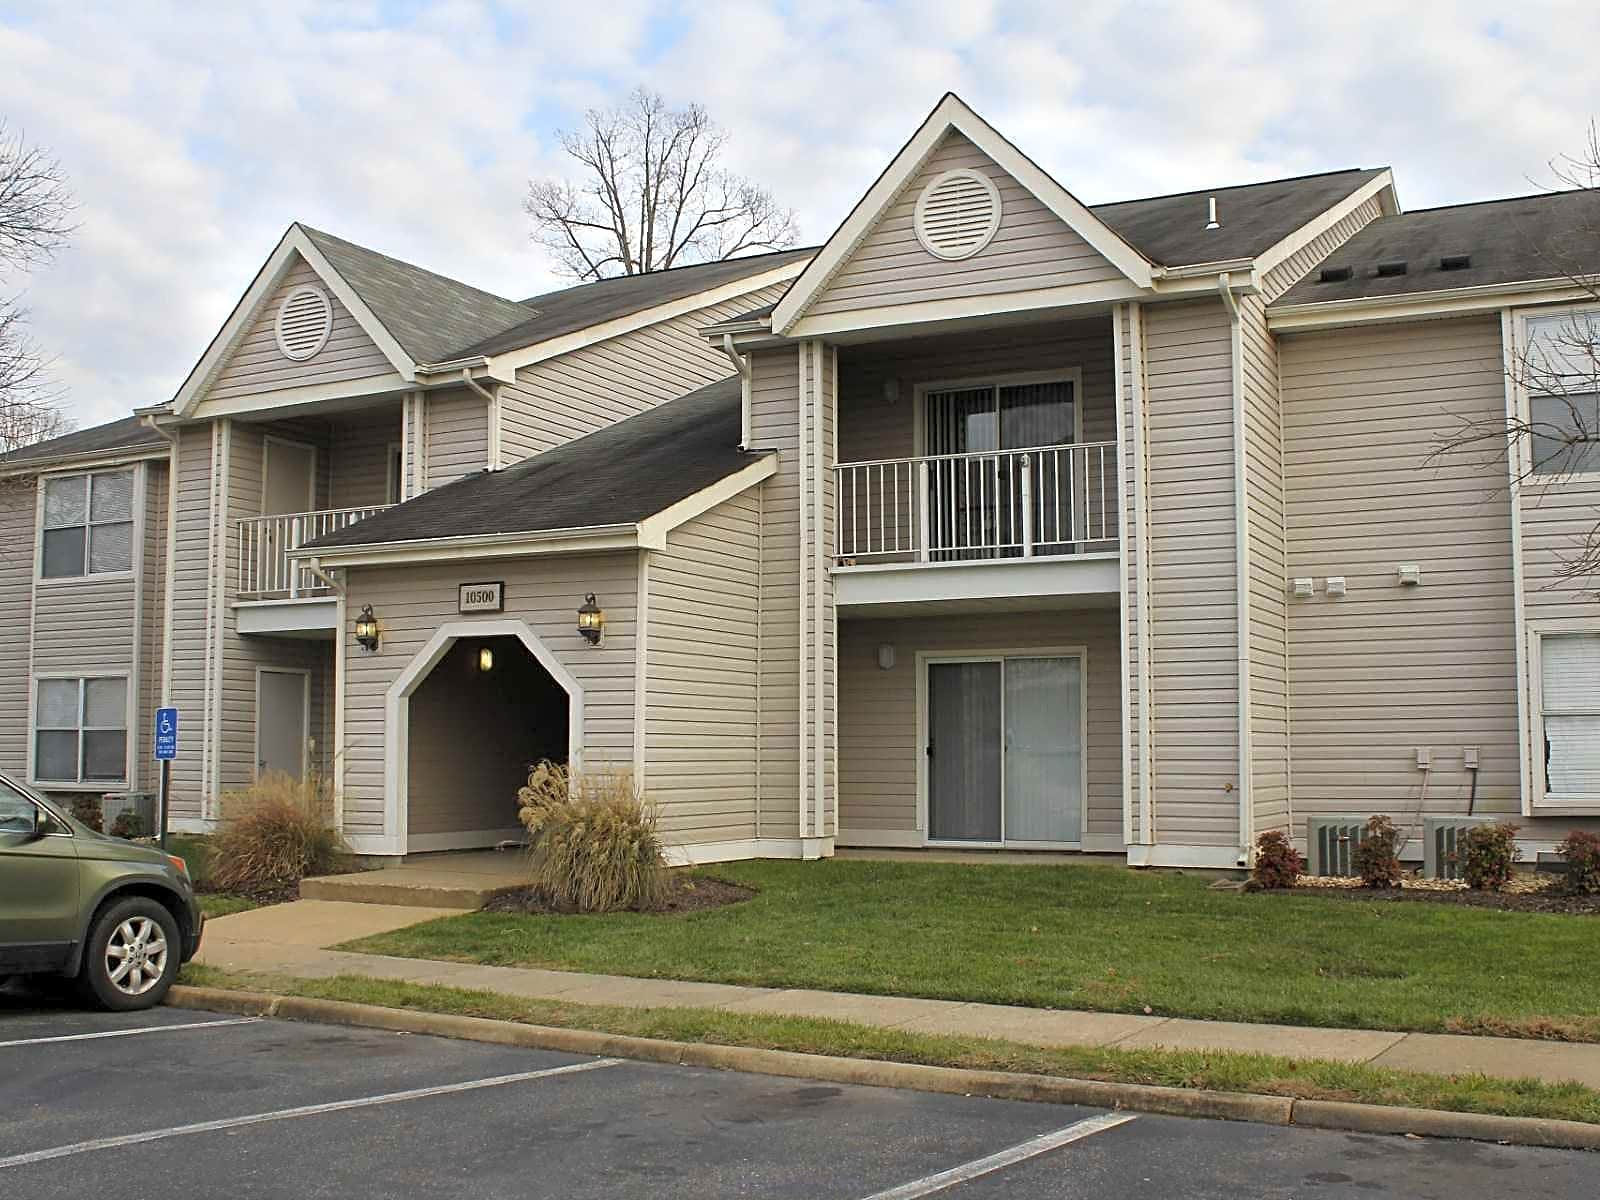 Photo: Fredericksburg Apartment for Rent - $912.00 / month; 1 Bd & 1 Ba